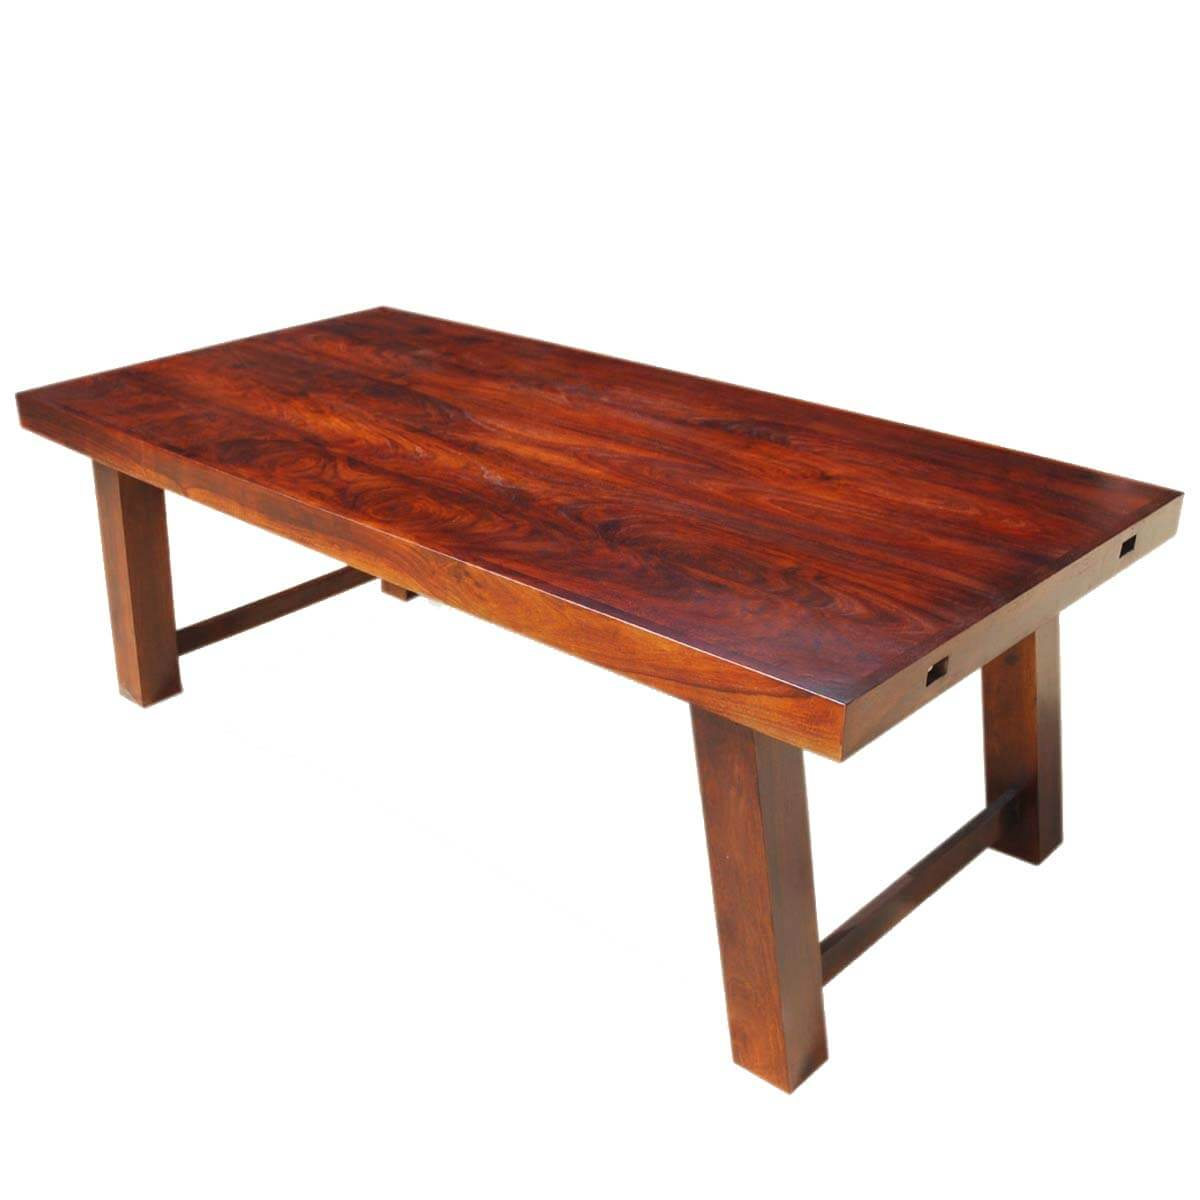 Sierra nevada rustic solid wood large extension dining table for Extension dining table